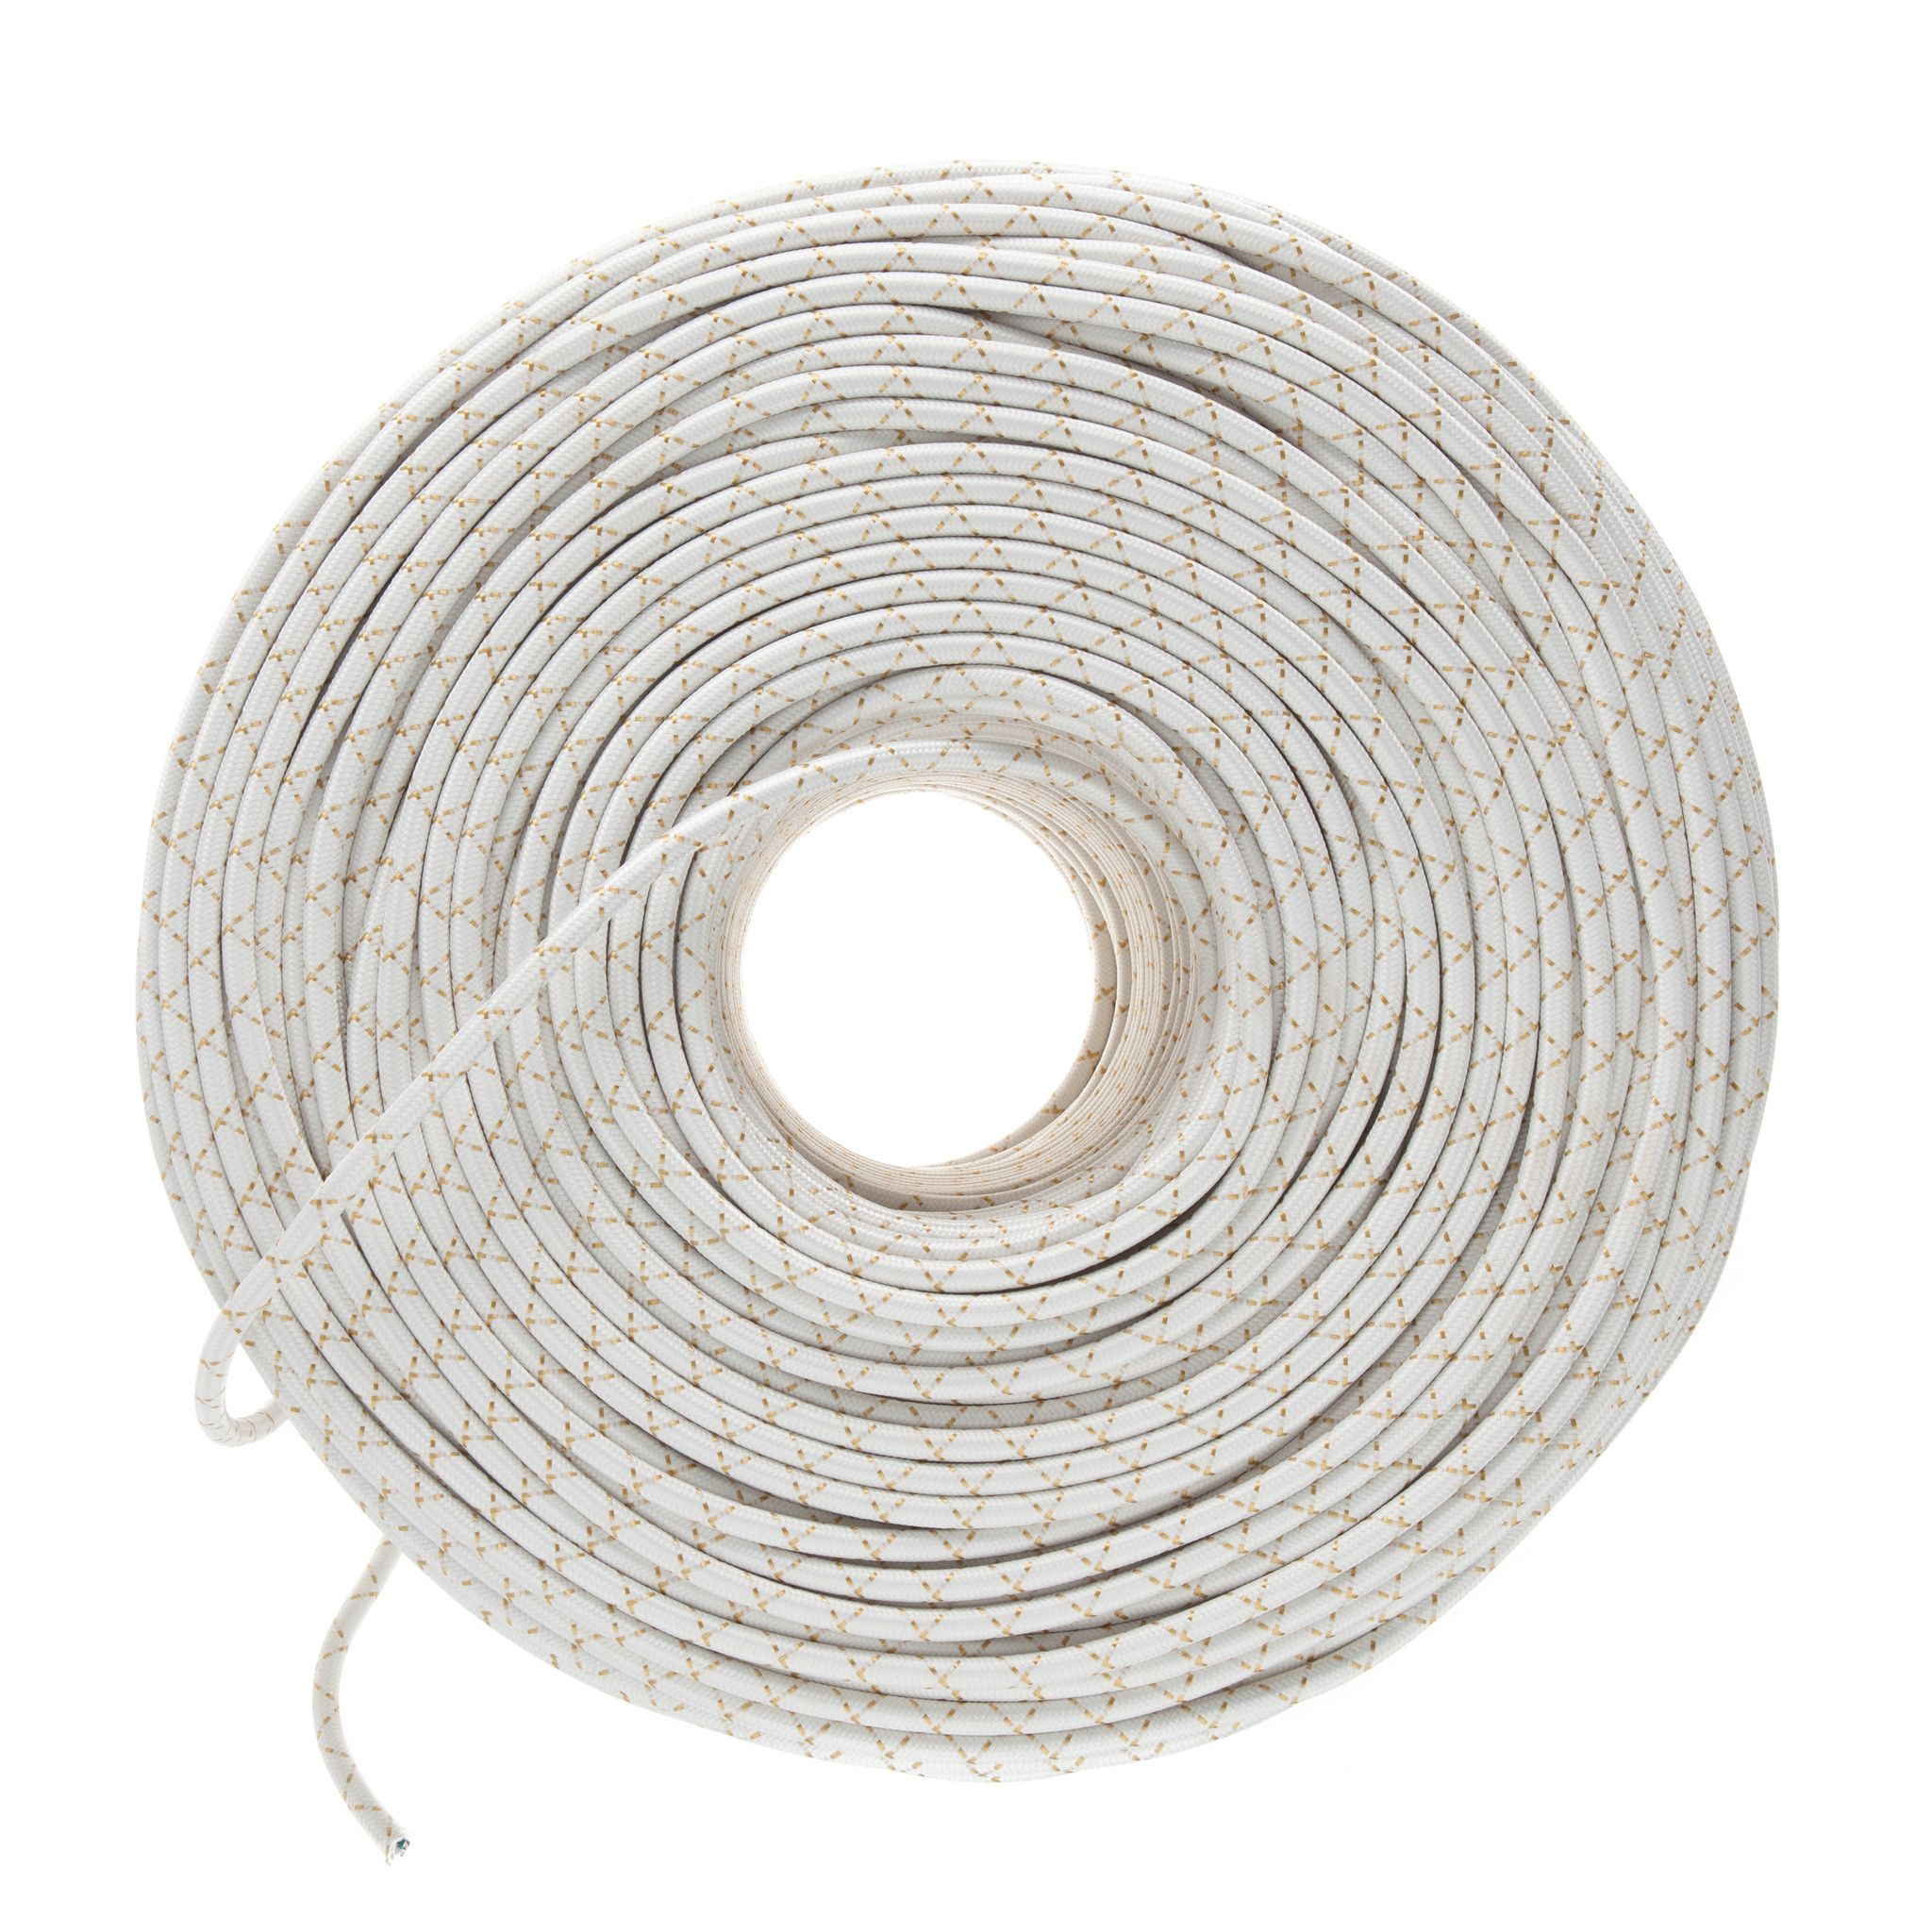 Cloth Covered Electrical Wire - White & Brass X | Color Cord Company